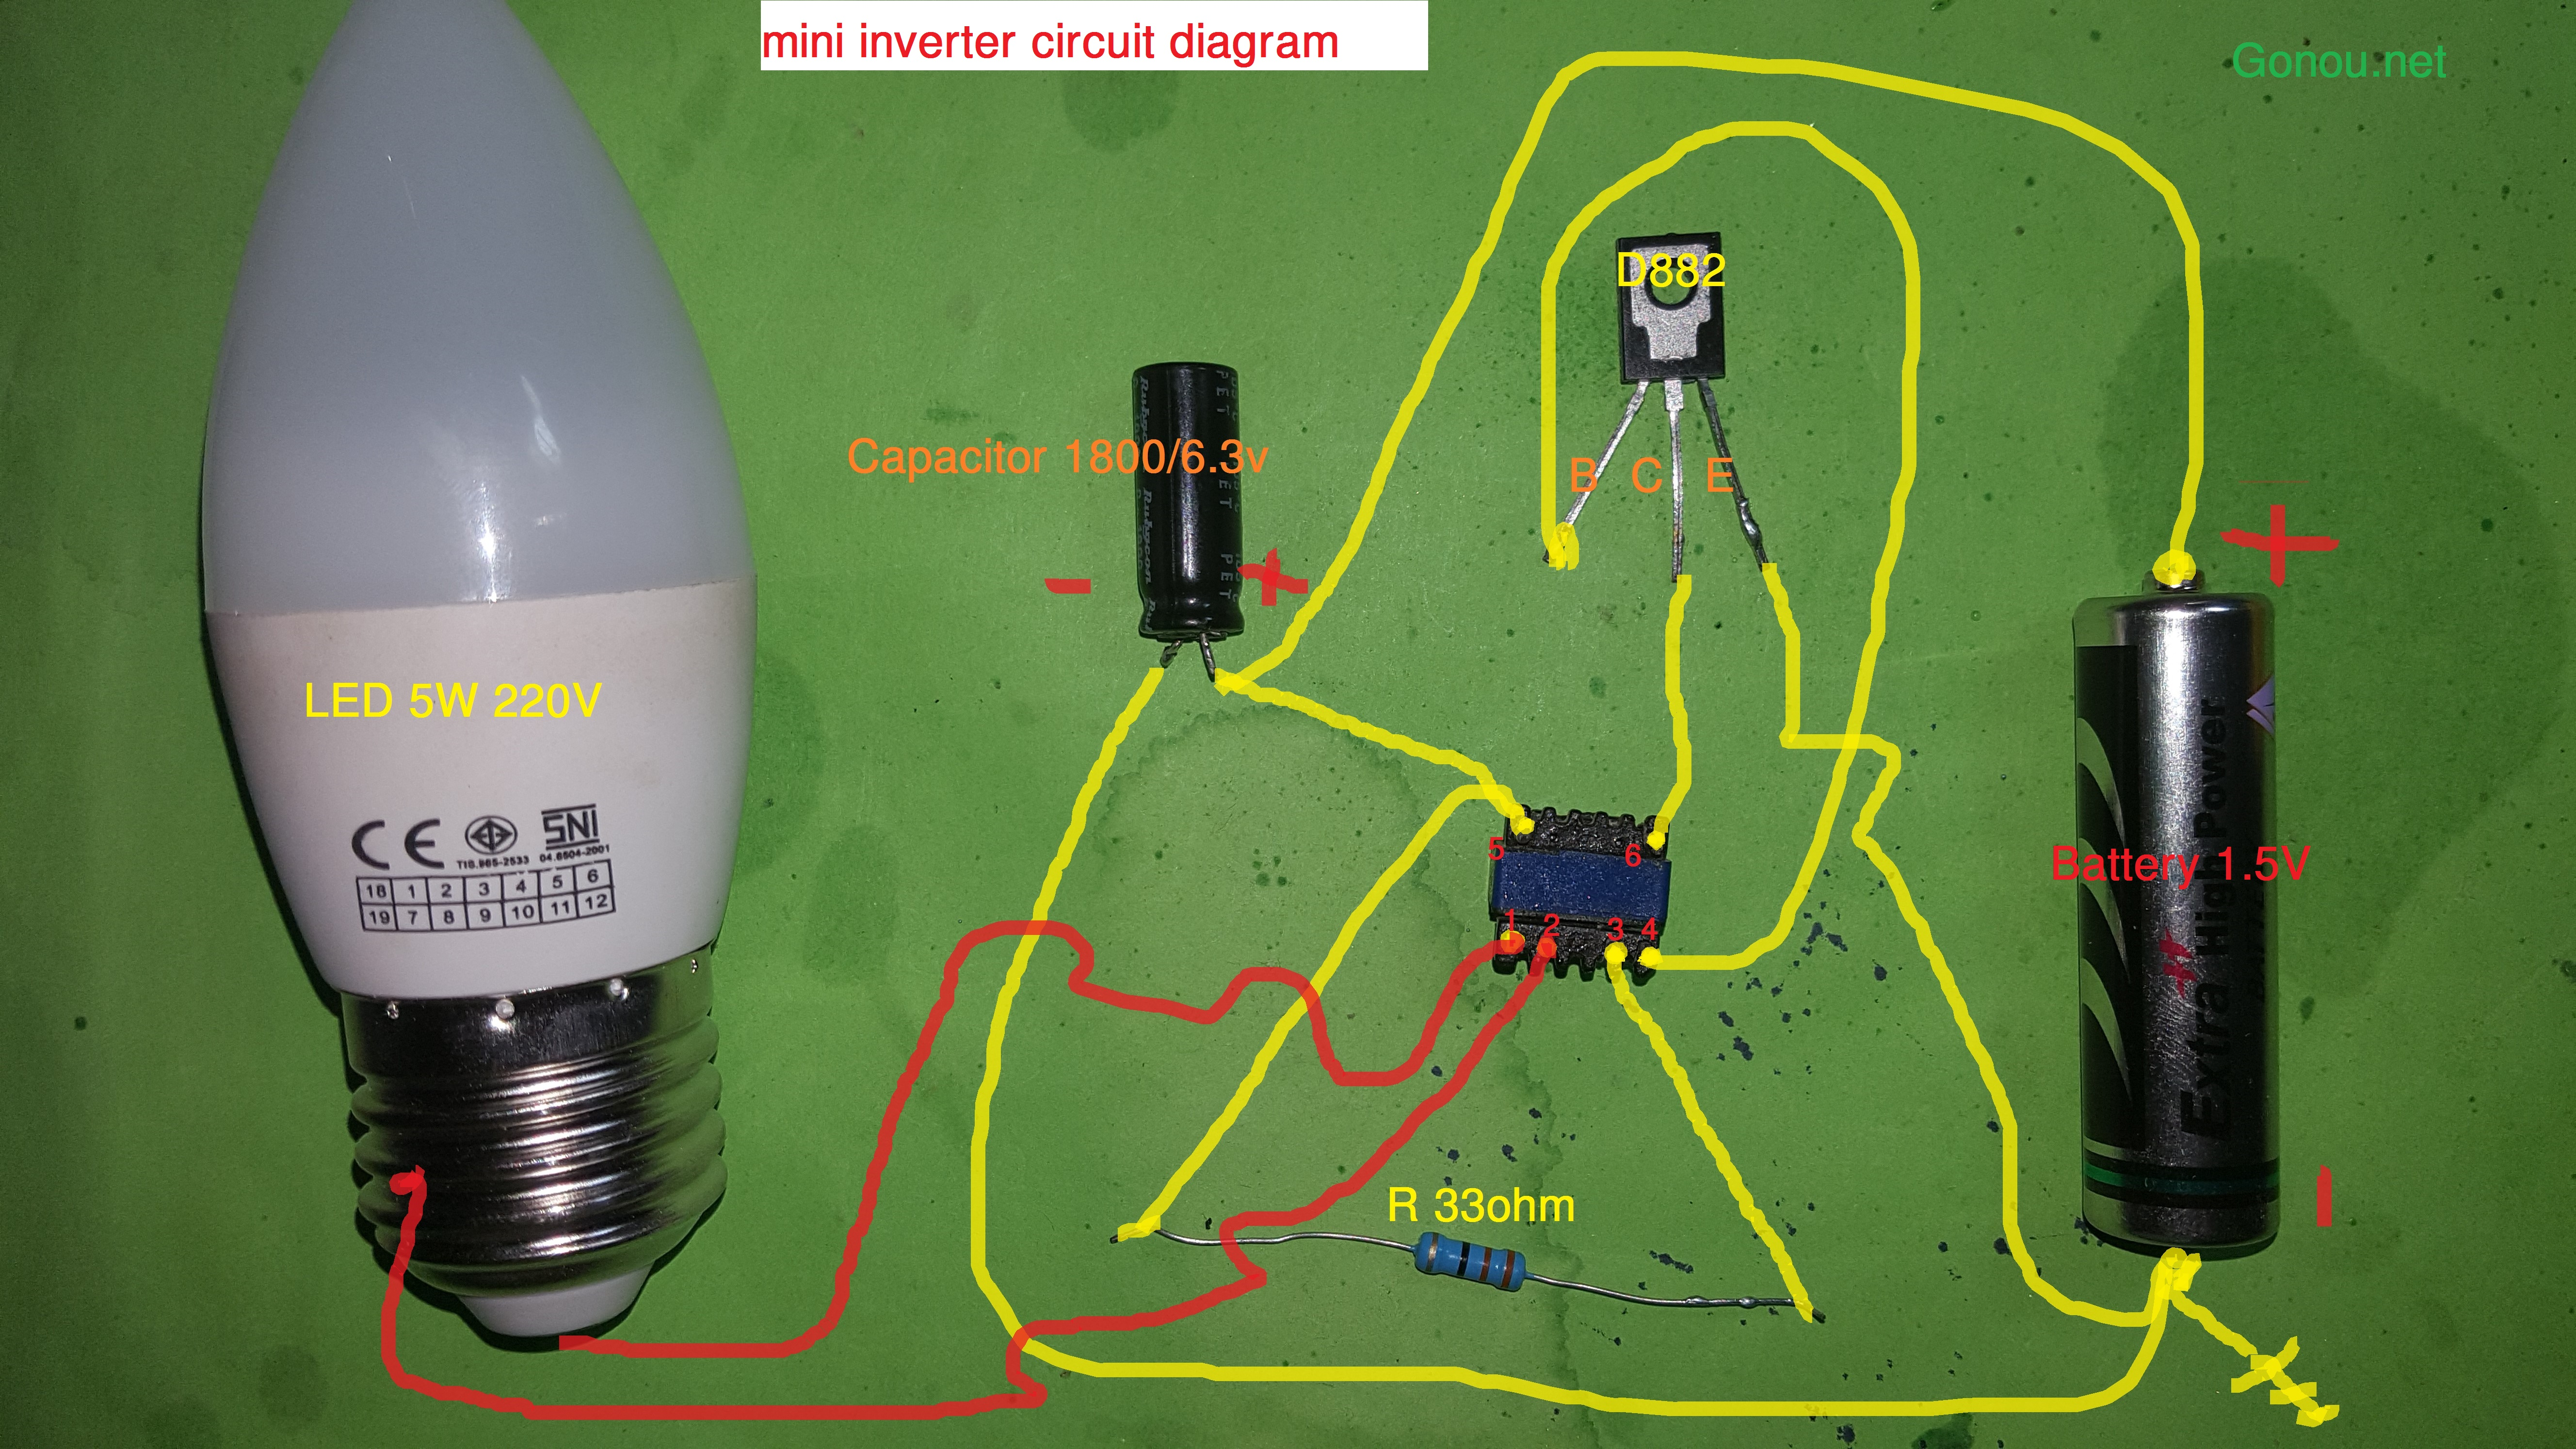 How to make Mini invertor & Electric circuit